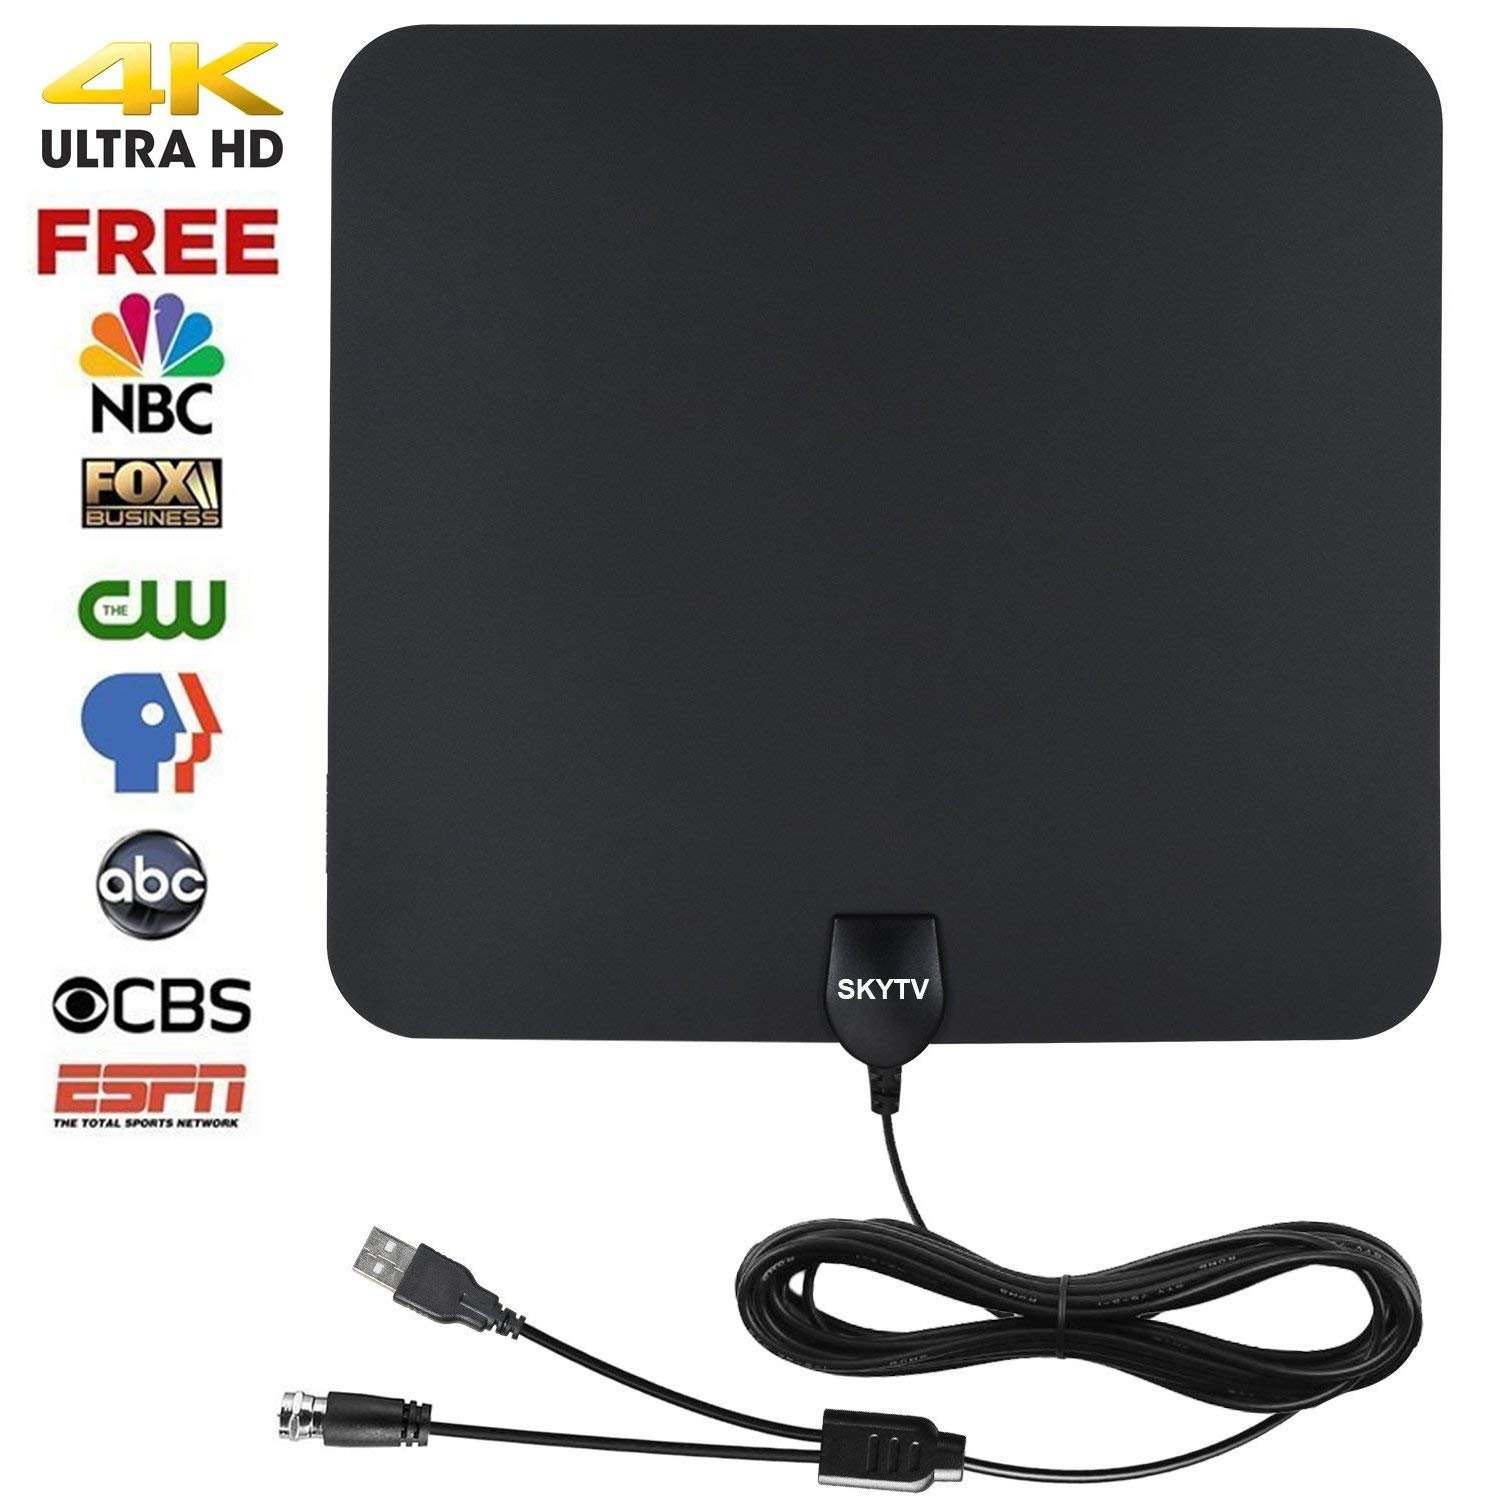 Amplified Hdtv Antenna Skytv 50 Miles Range Digtial Hd Sky Tv Box Wiring Diagrams Antennas With 132ft Long Copper Coaxial Cable Black Electronics